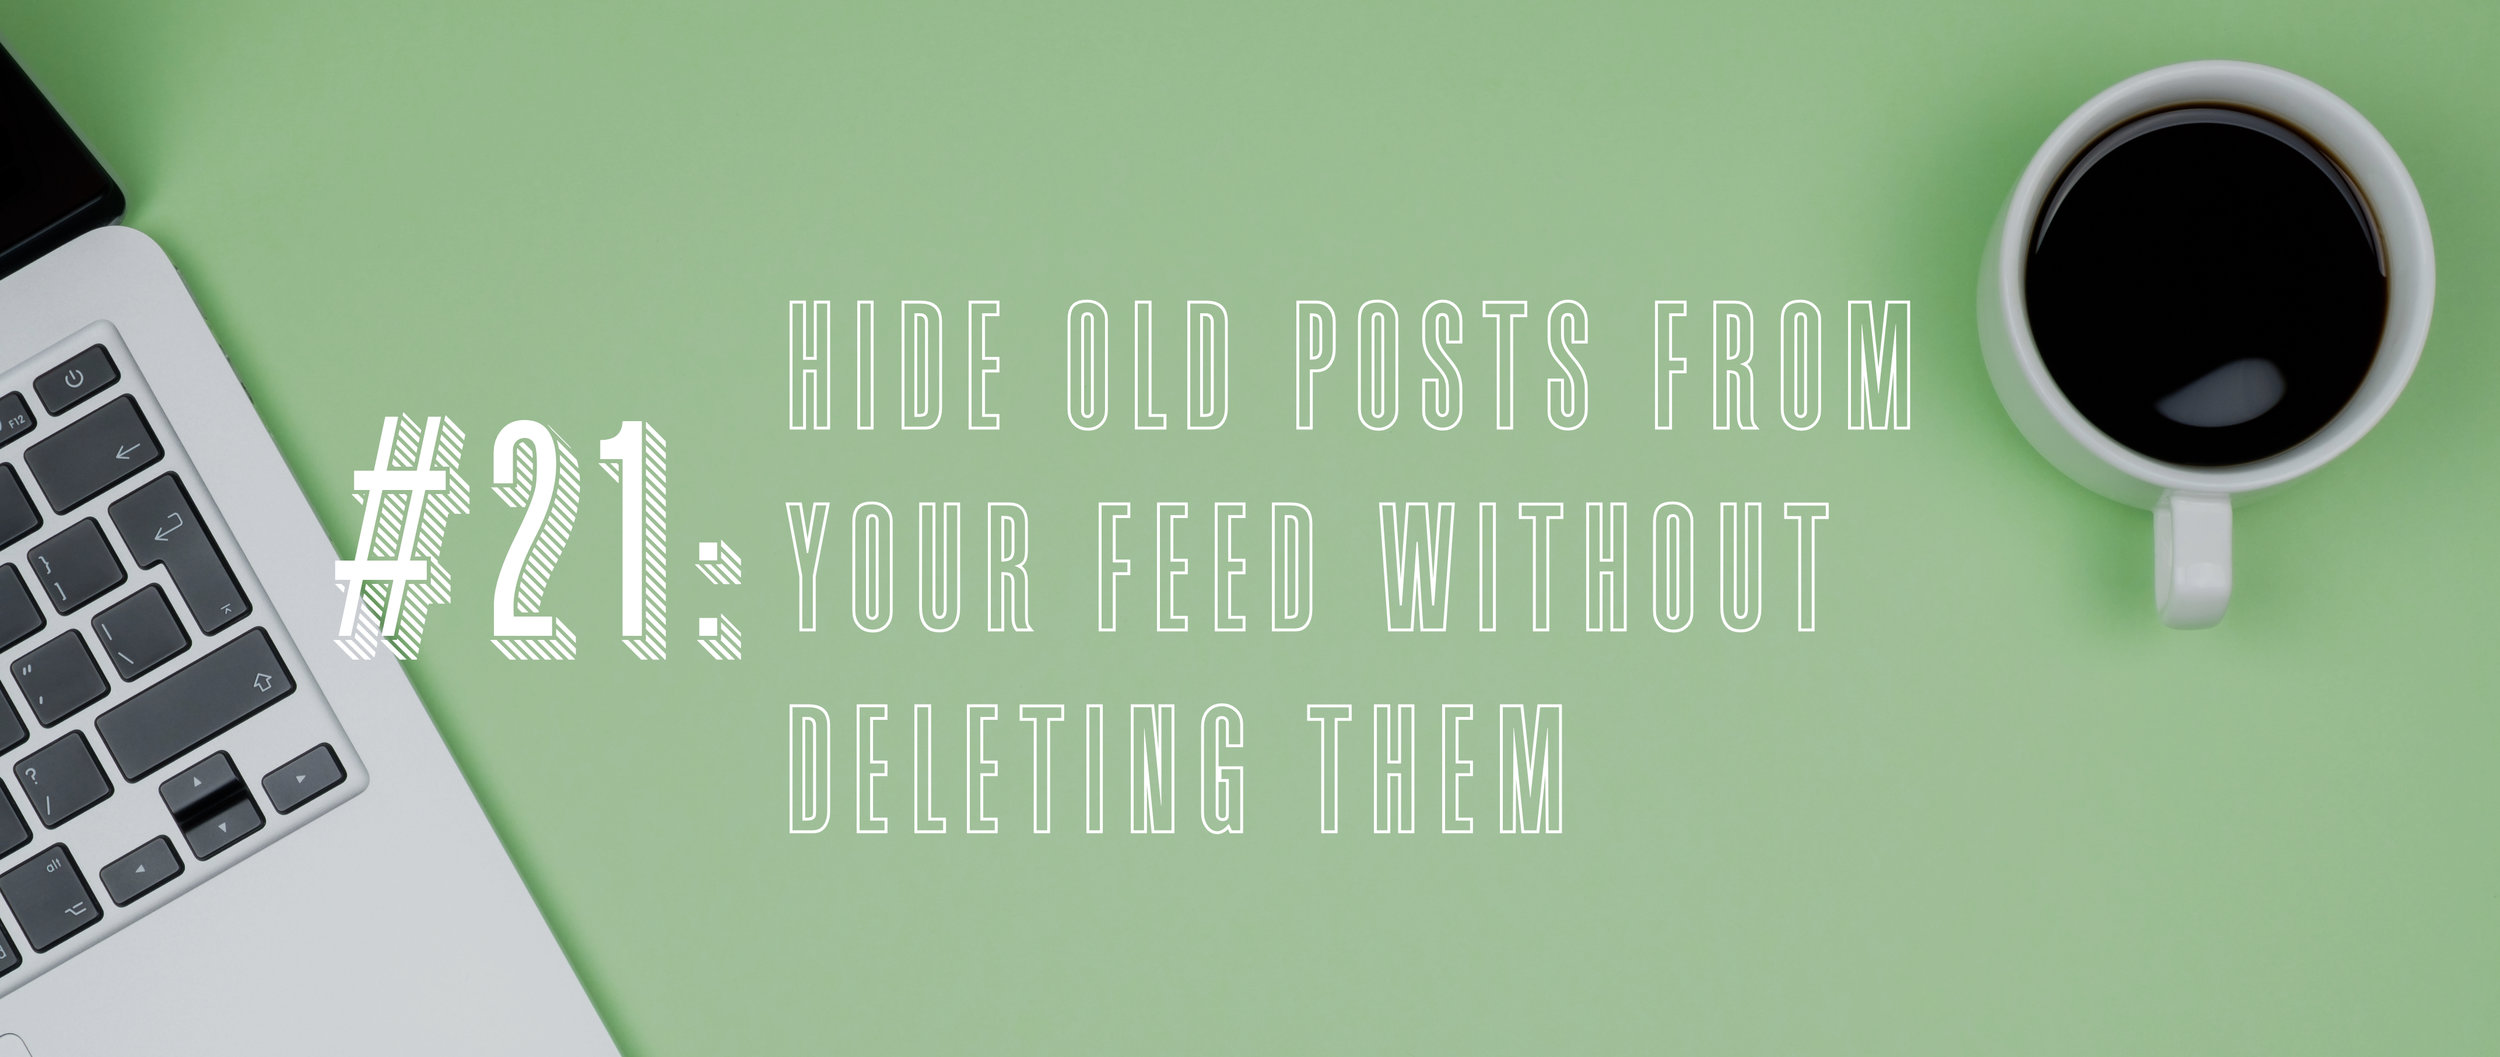 21 Hide Old Posts from Your Feed Without Deleting Them  .jpg